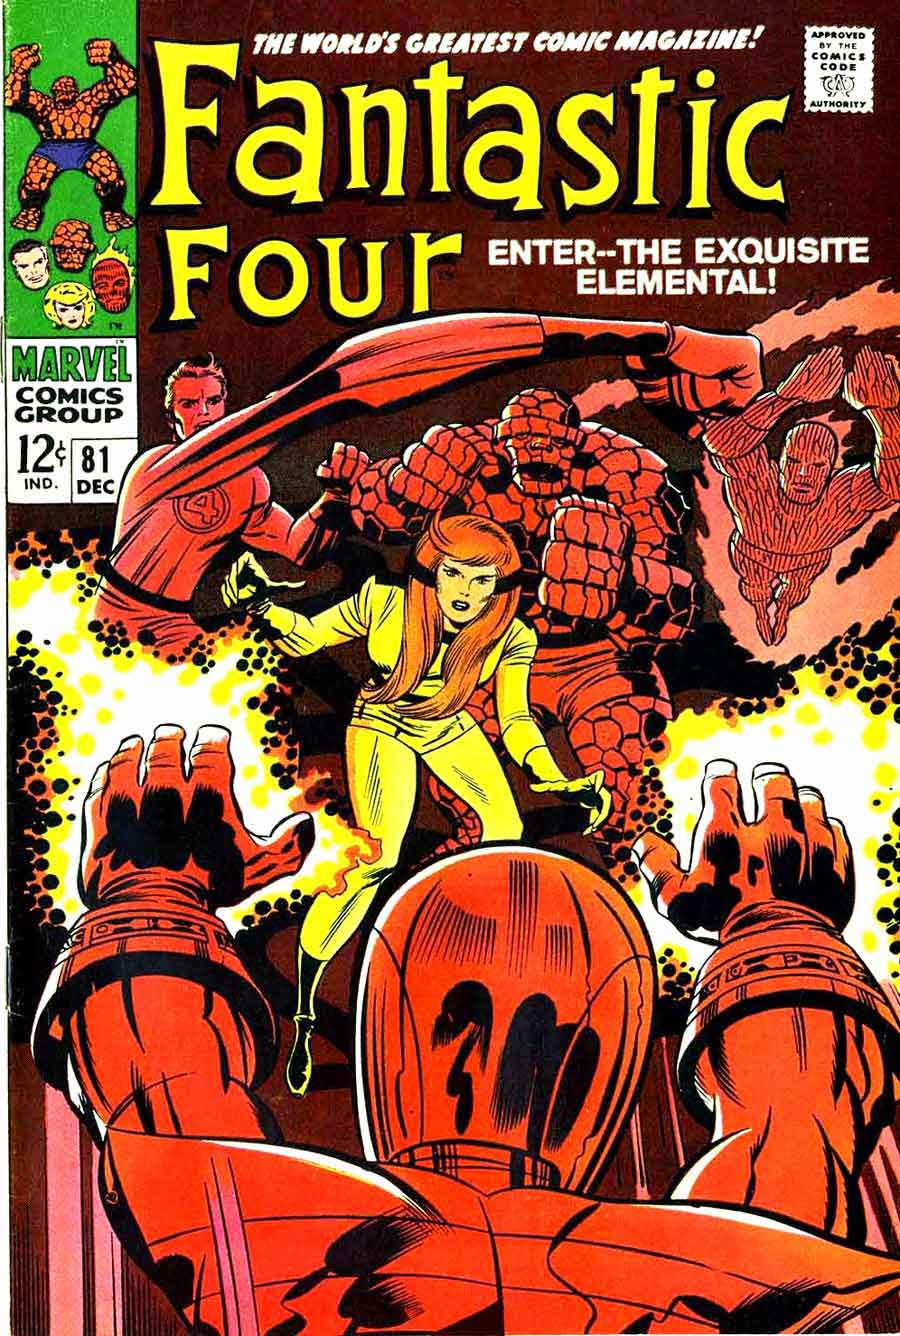 Fantastc Four v1 #81 marvel 1960s silver age comic book cover art by Jack Kirby